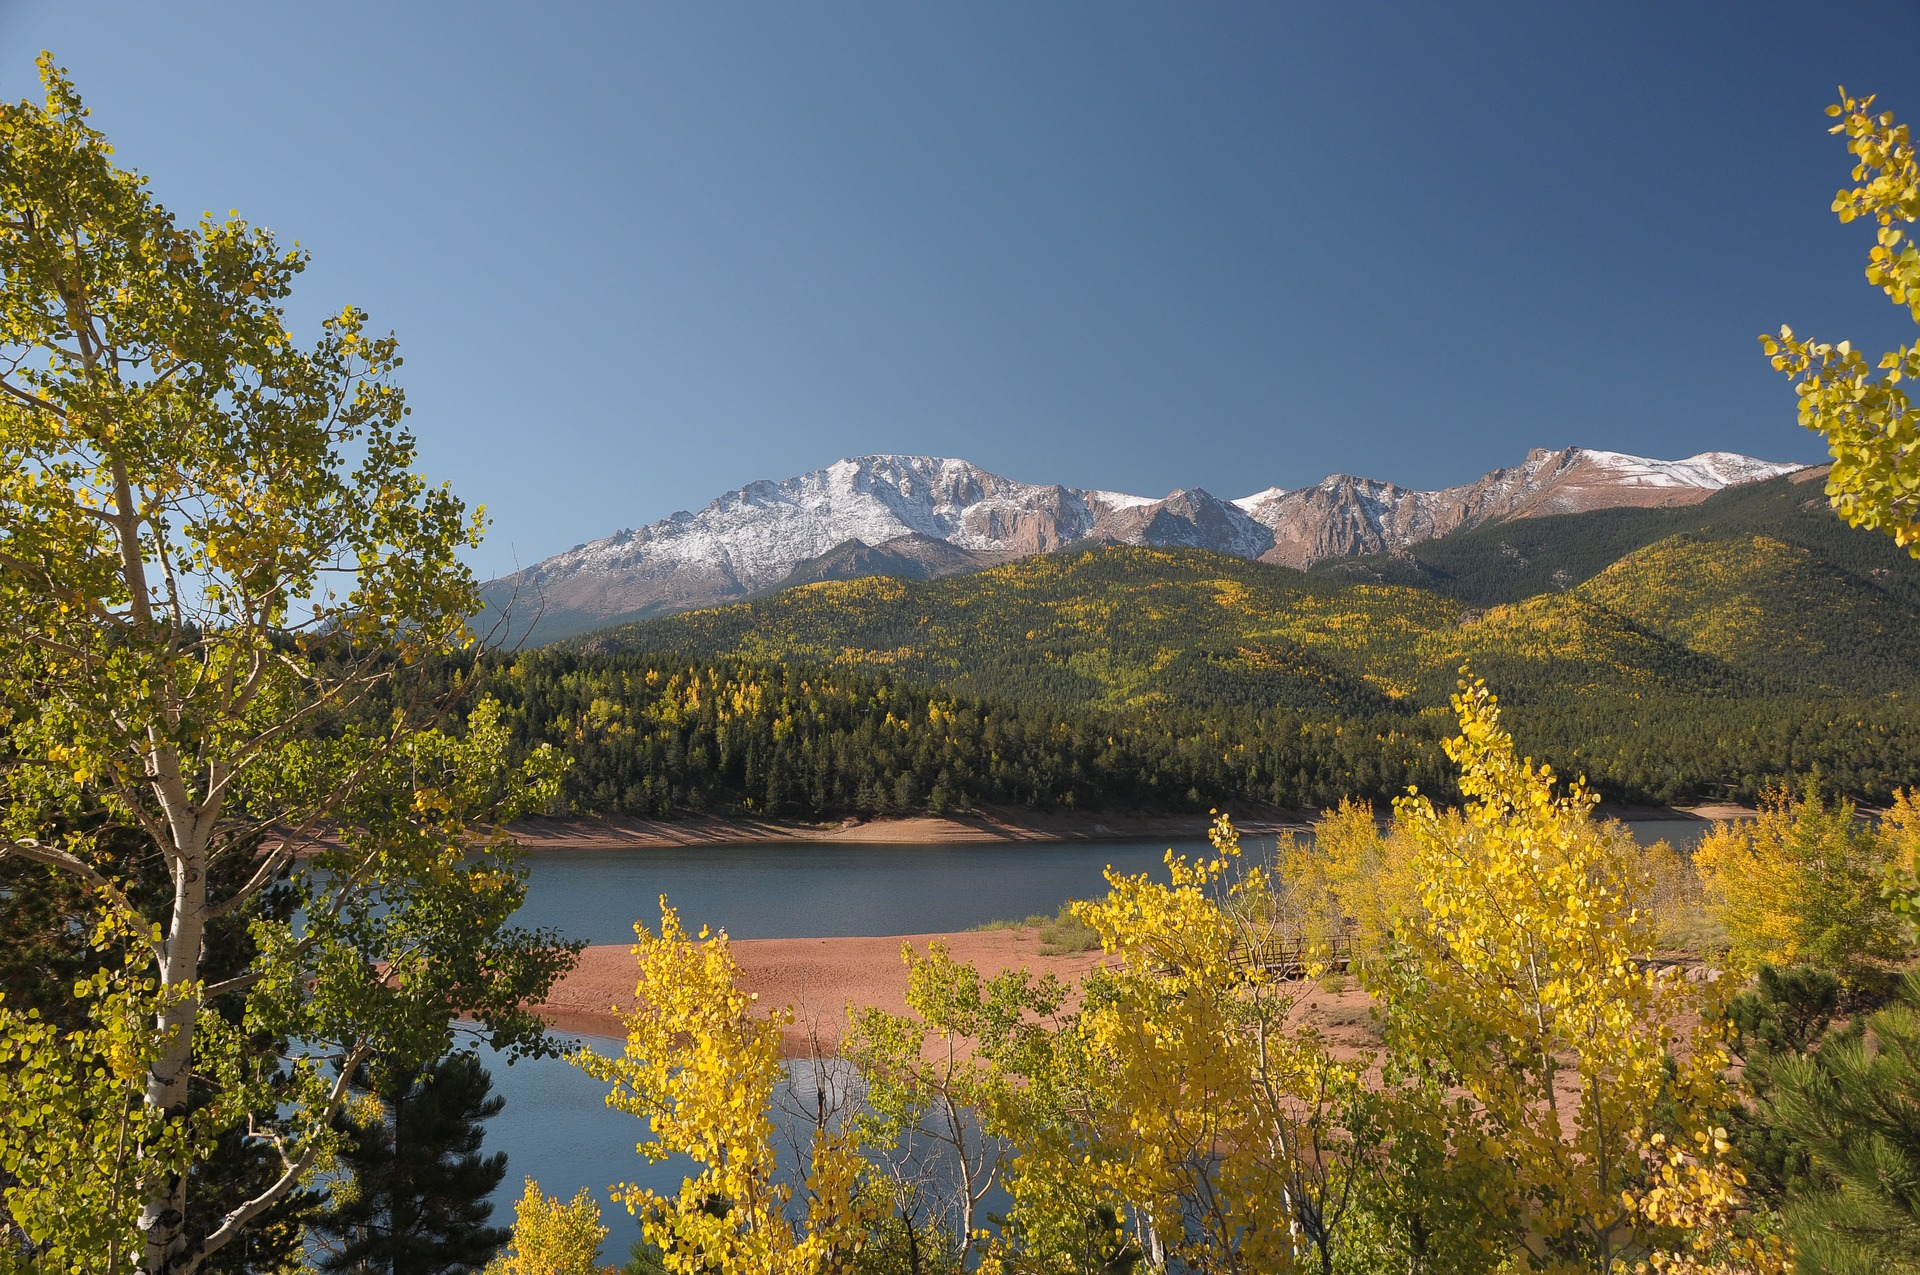 Pikes Peak Highway - Best Fall Vacations in the U.S.